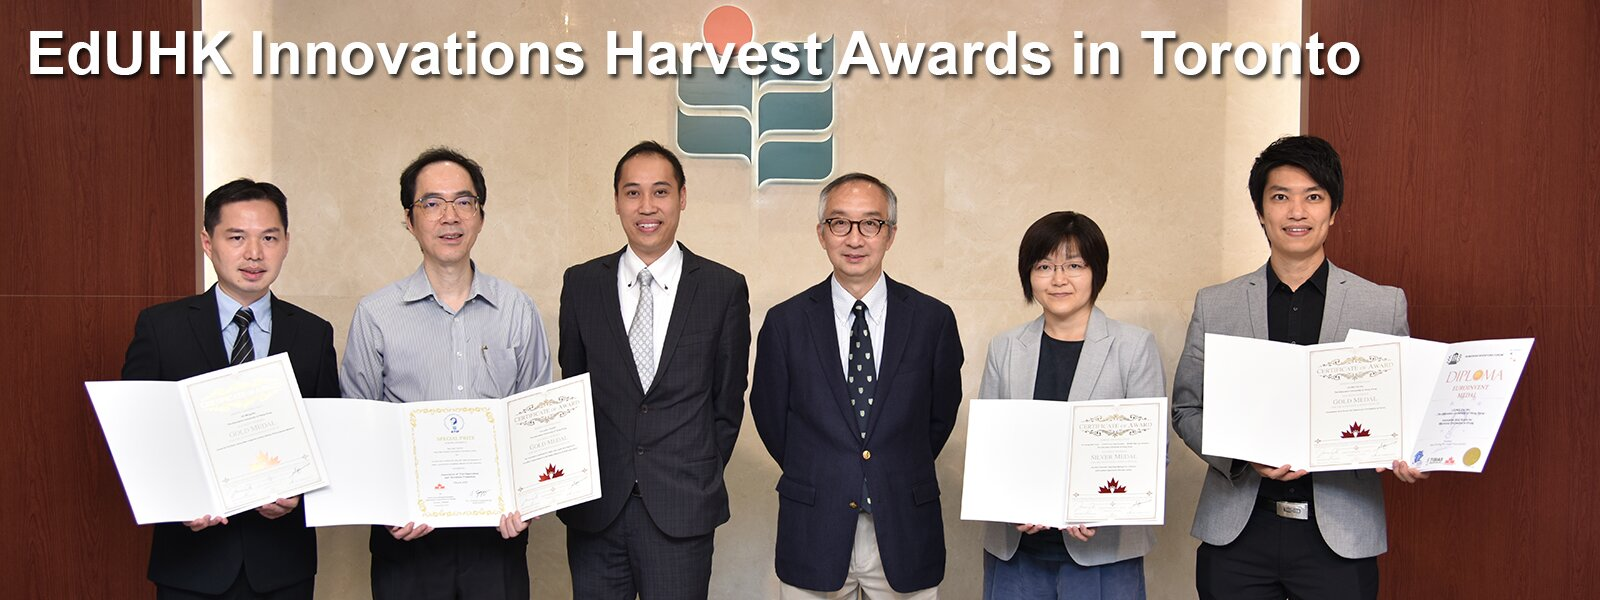 EdUHK Innovations Harvest Awards in Toronto